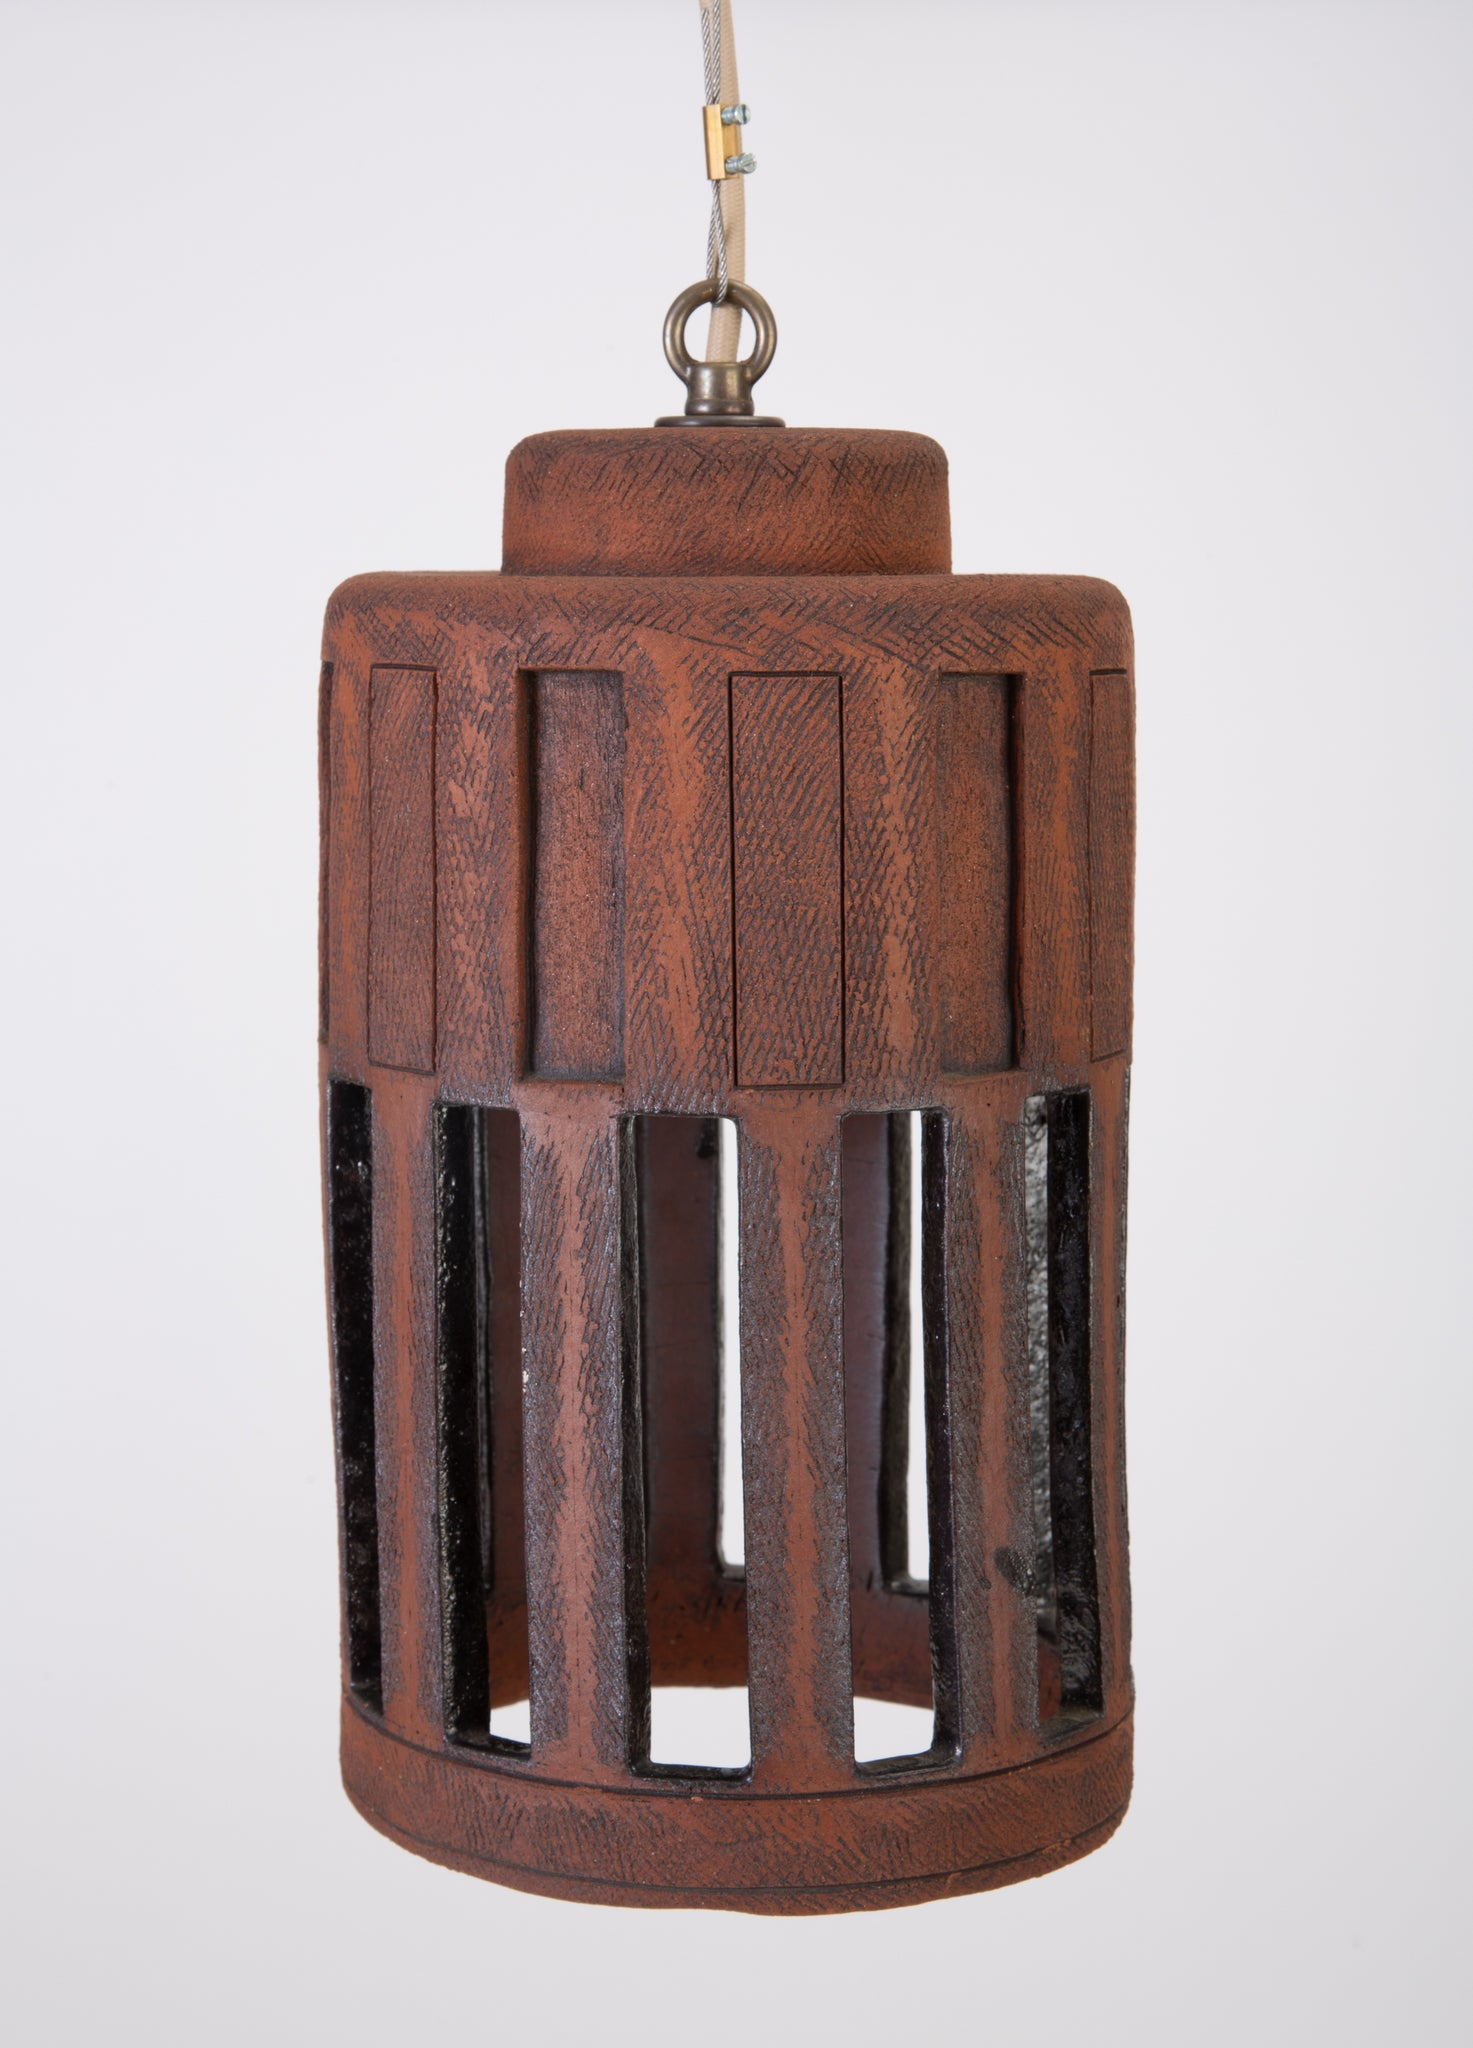 1960s Studio Pottery Cylindrical Pendant Light Fixture with Rectangular Impressions